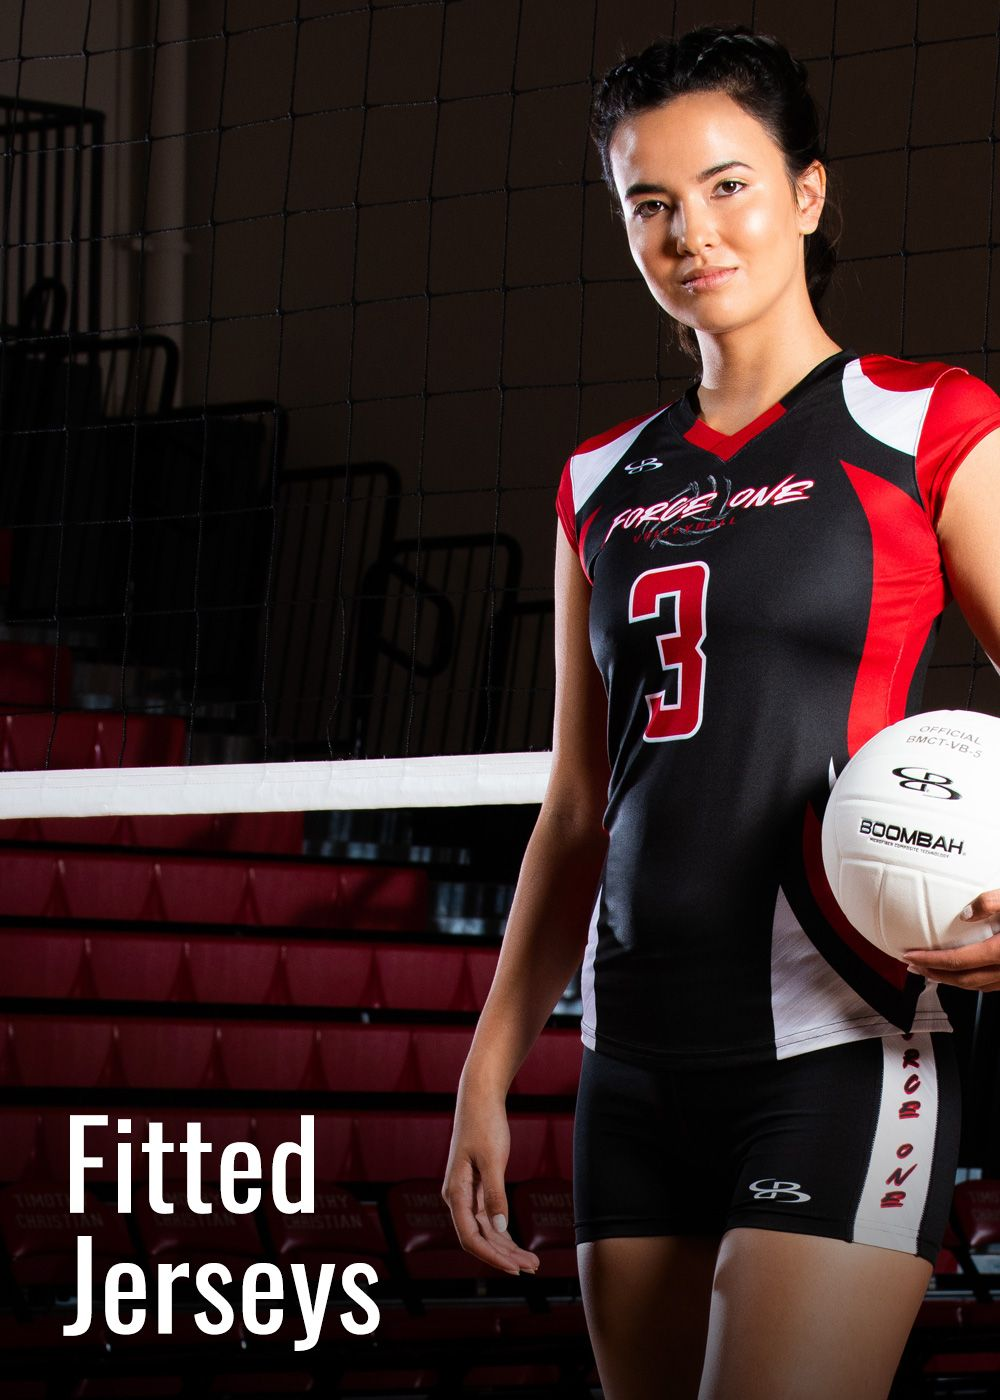 Custom Women's and Girls' Fitted Tight Volleyball Jerseys